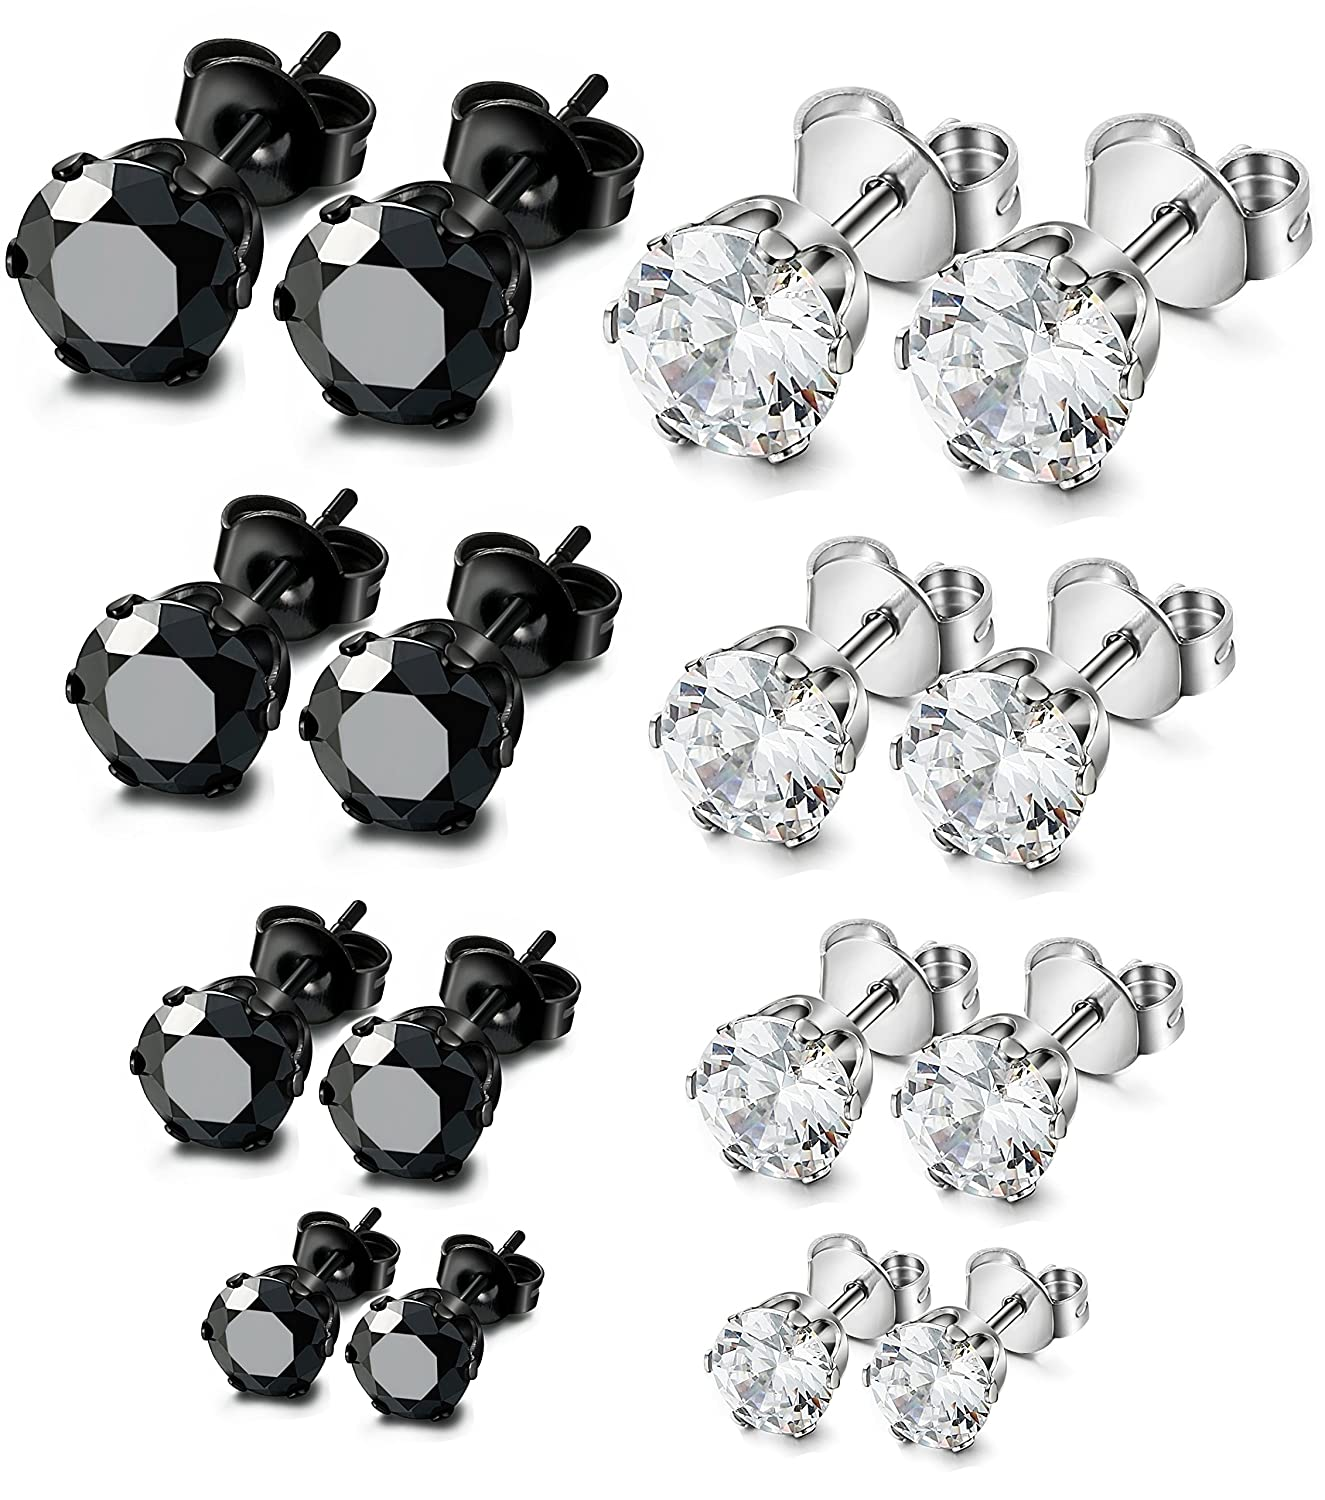 ORAZIO 8 Pairs Stainless Steel Mens Womens Stud Earrings Pierced Cubic Zirconia Earrings, 3mm-10mm Available 3mm-6mm EH03-8SET